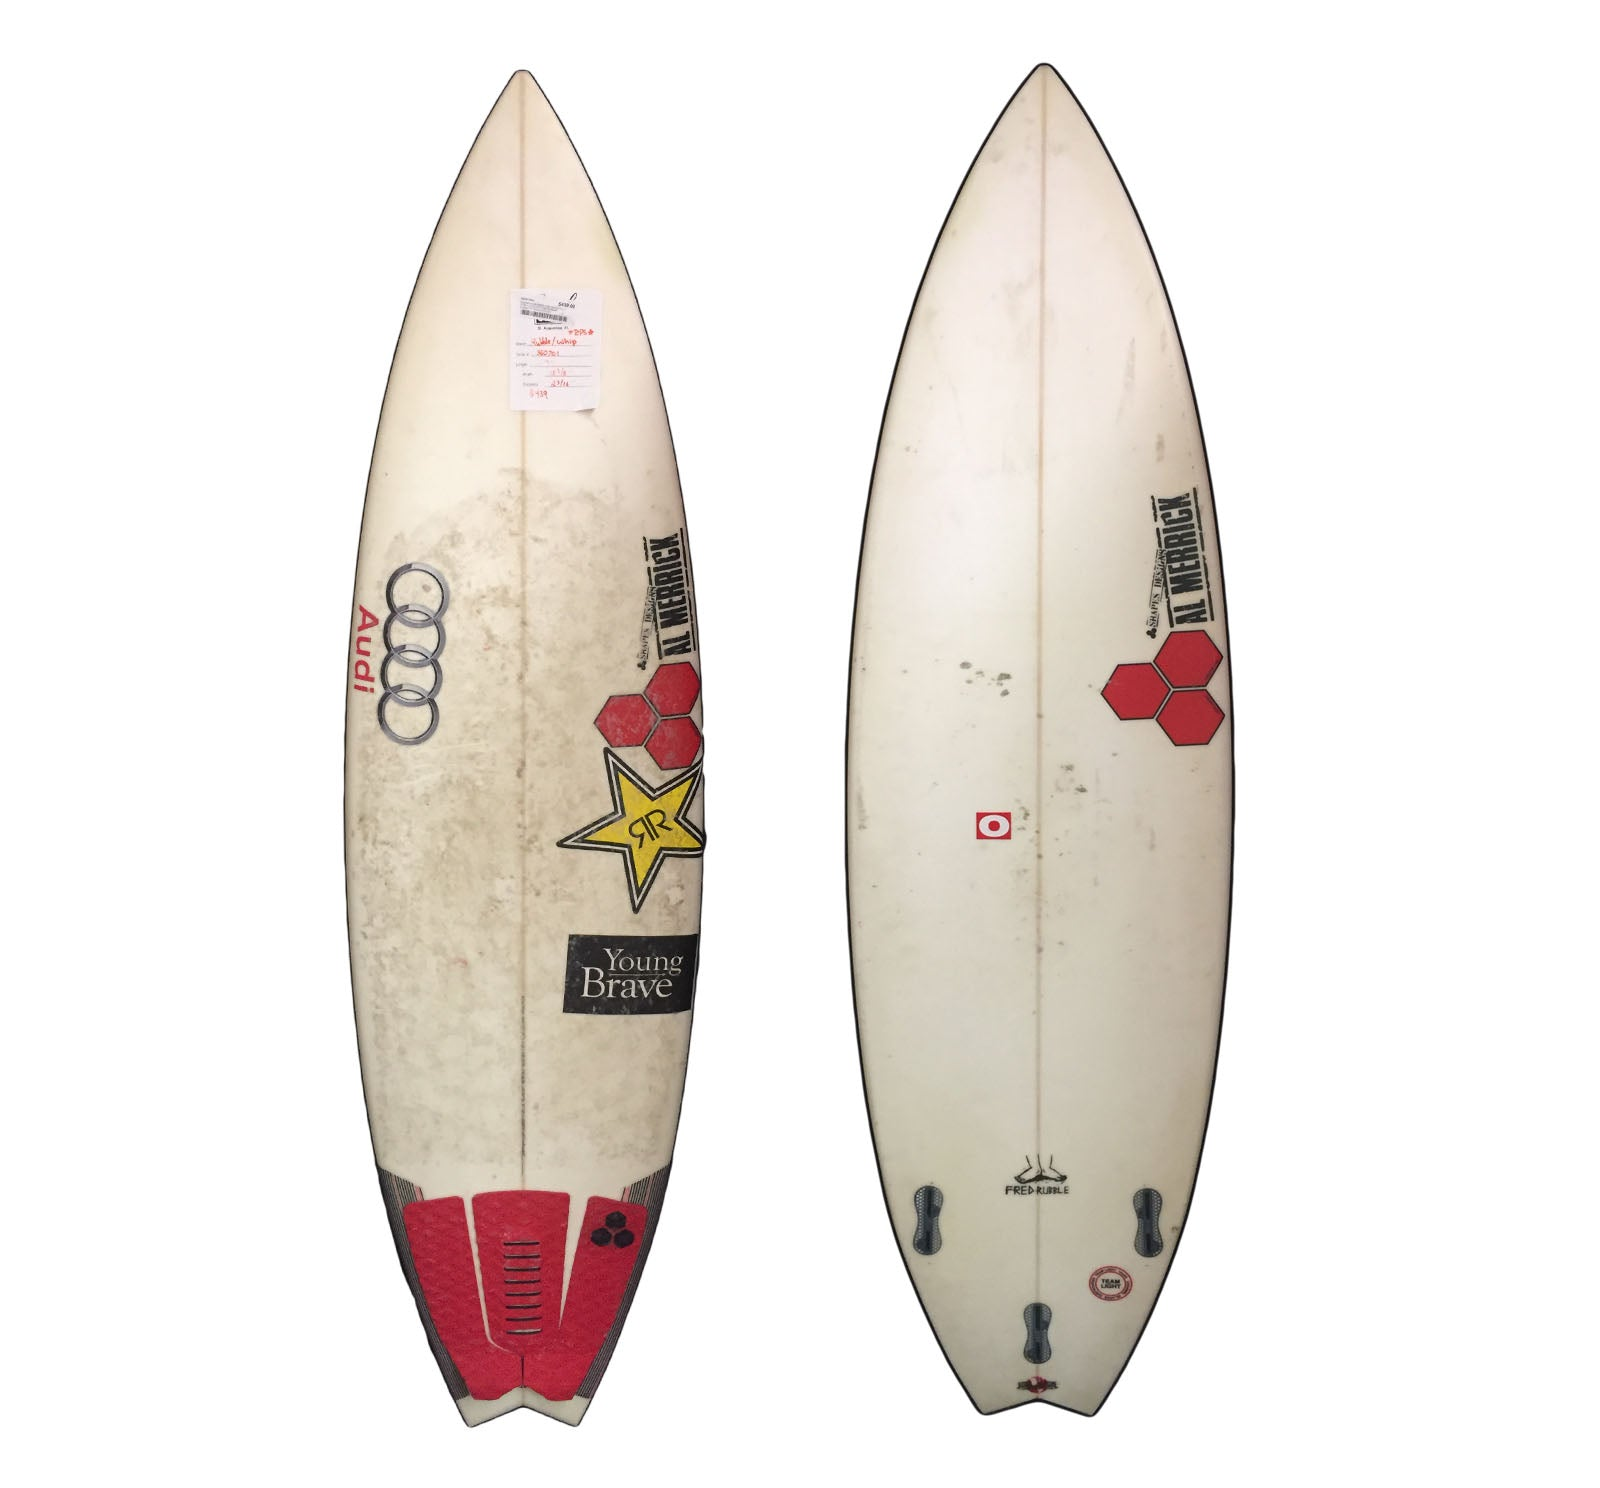 Channel Islands Rubble Whip 5'9 Used Surfboard